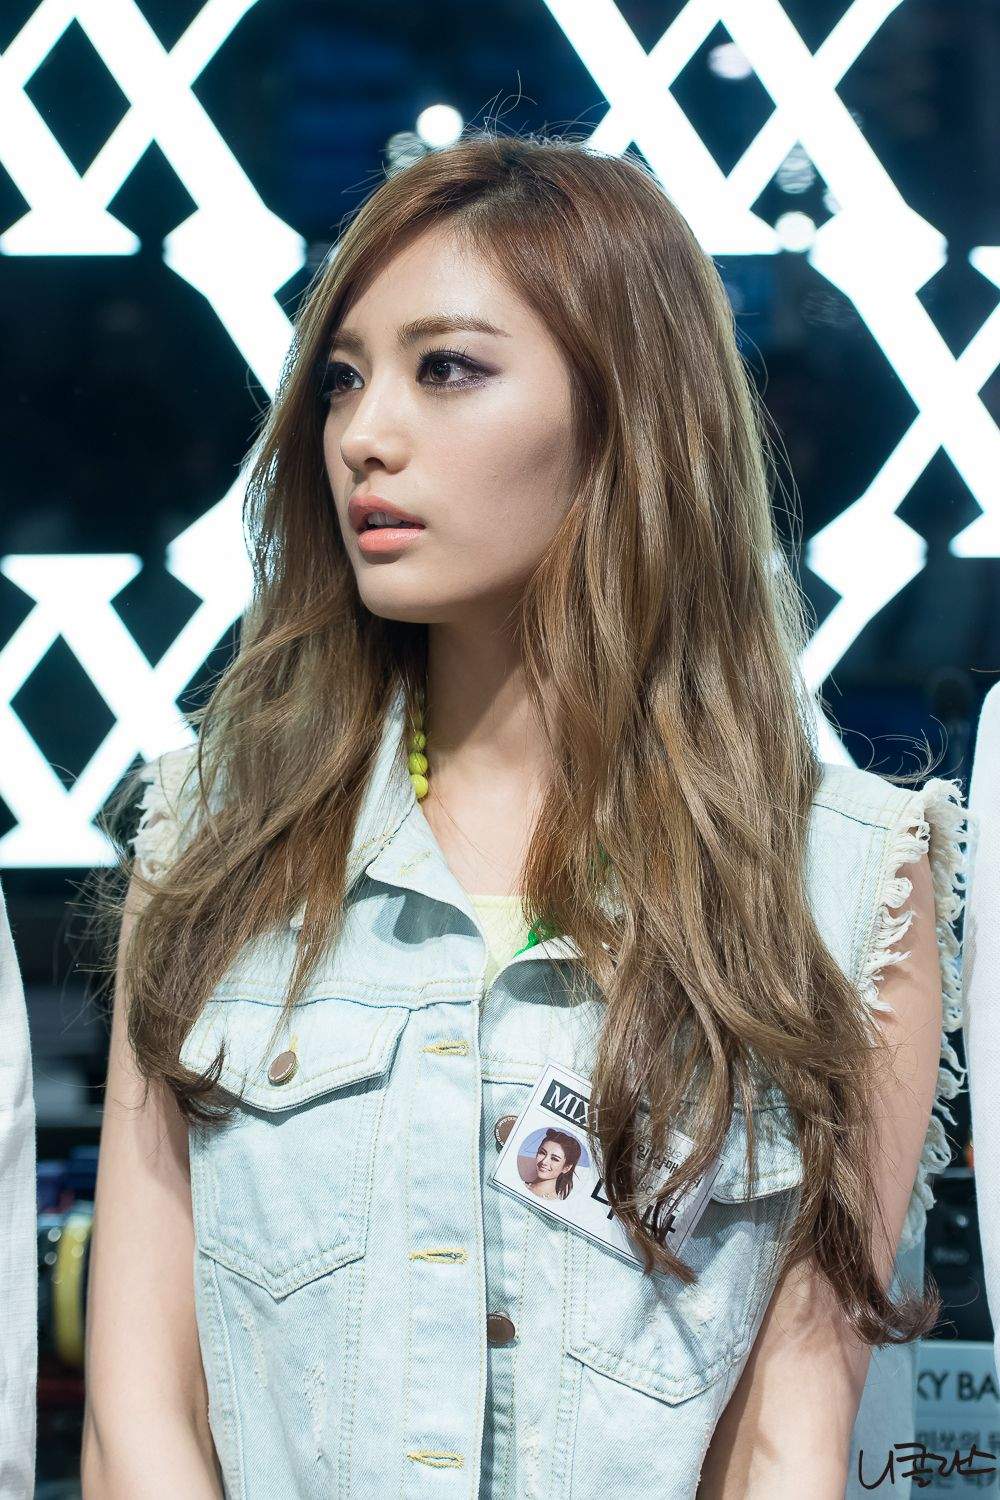 After School Nana Hairstyles for school, Hair styles